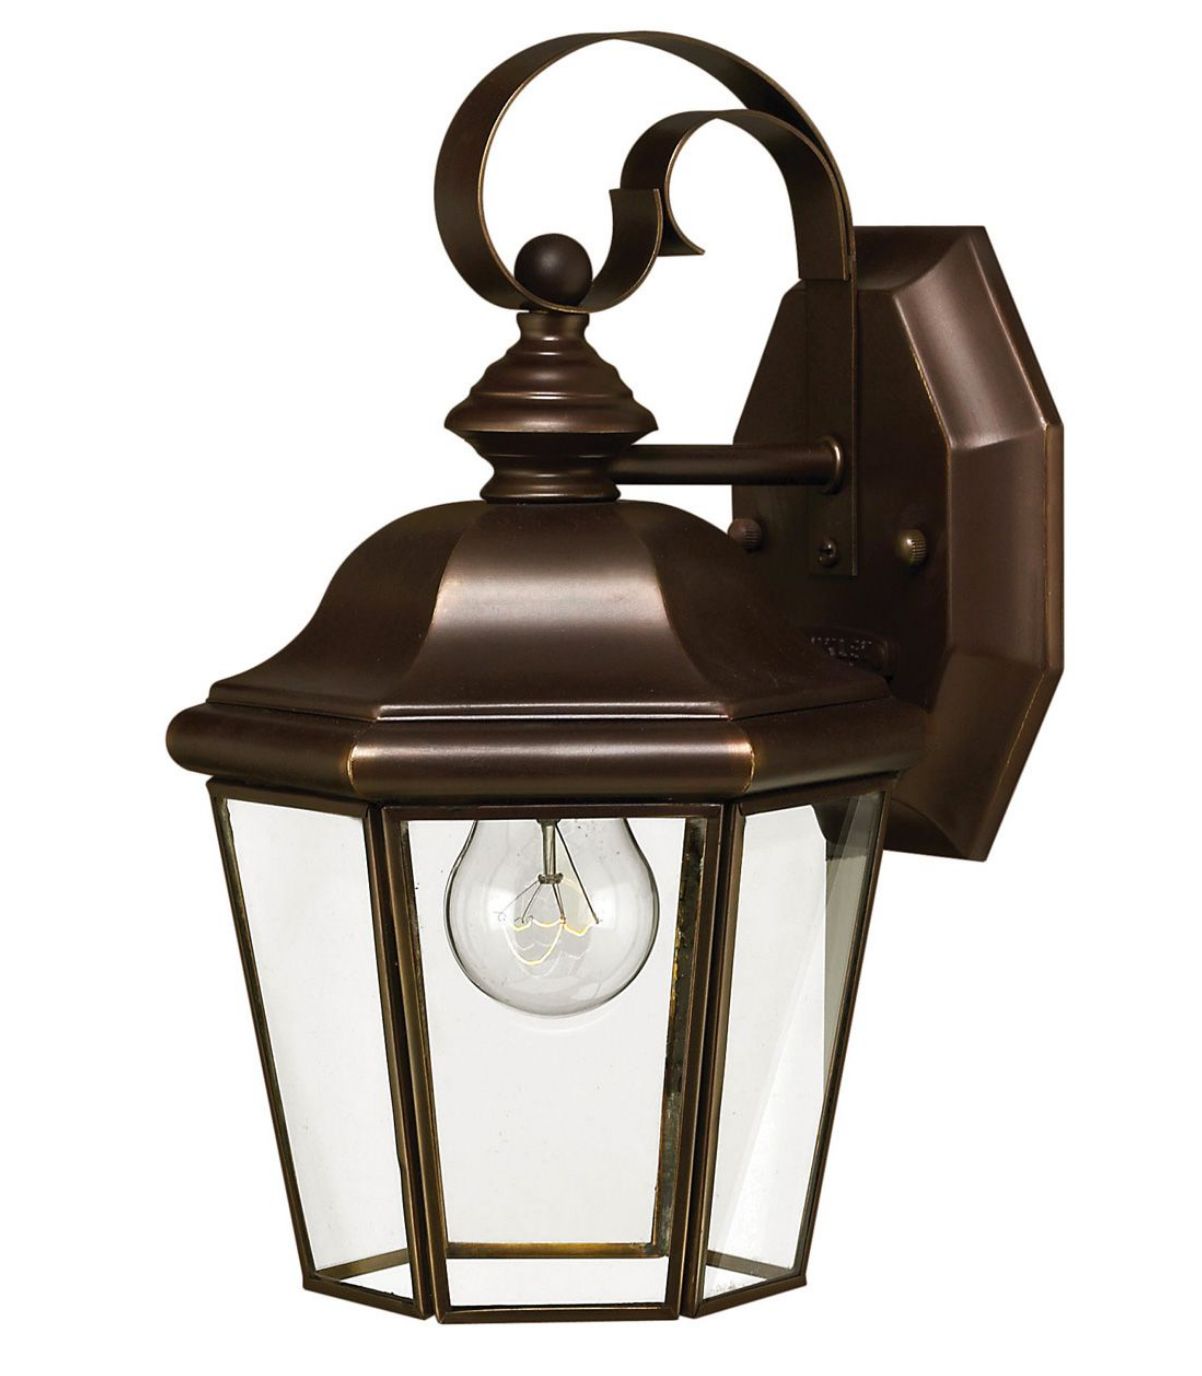 Outdoor Clifton Park Wall Lantern 2420, 2423, 2424